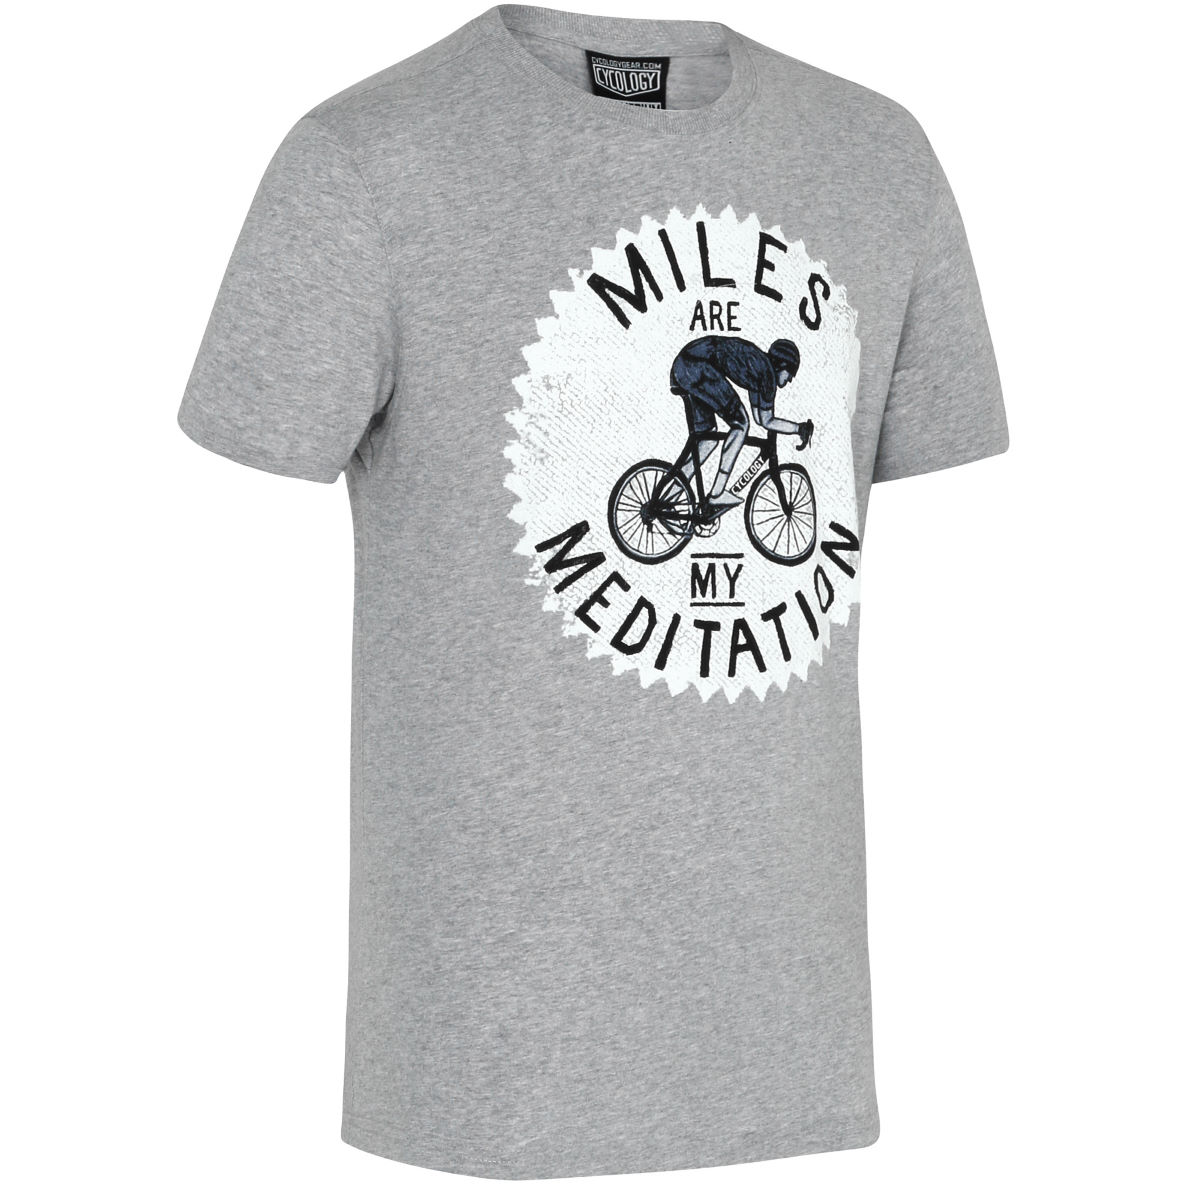 T-shirt Cycology Miles are my Meditation - Small Gris  T-shirts